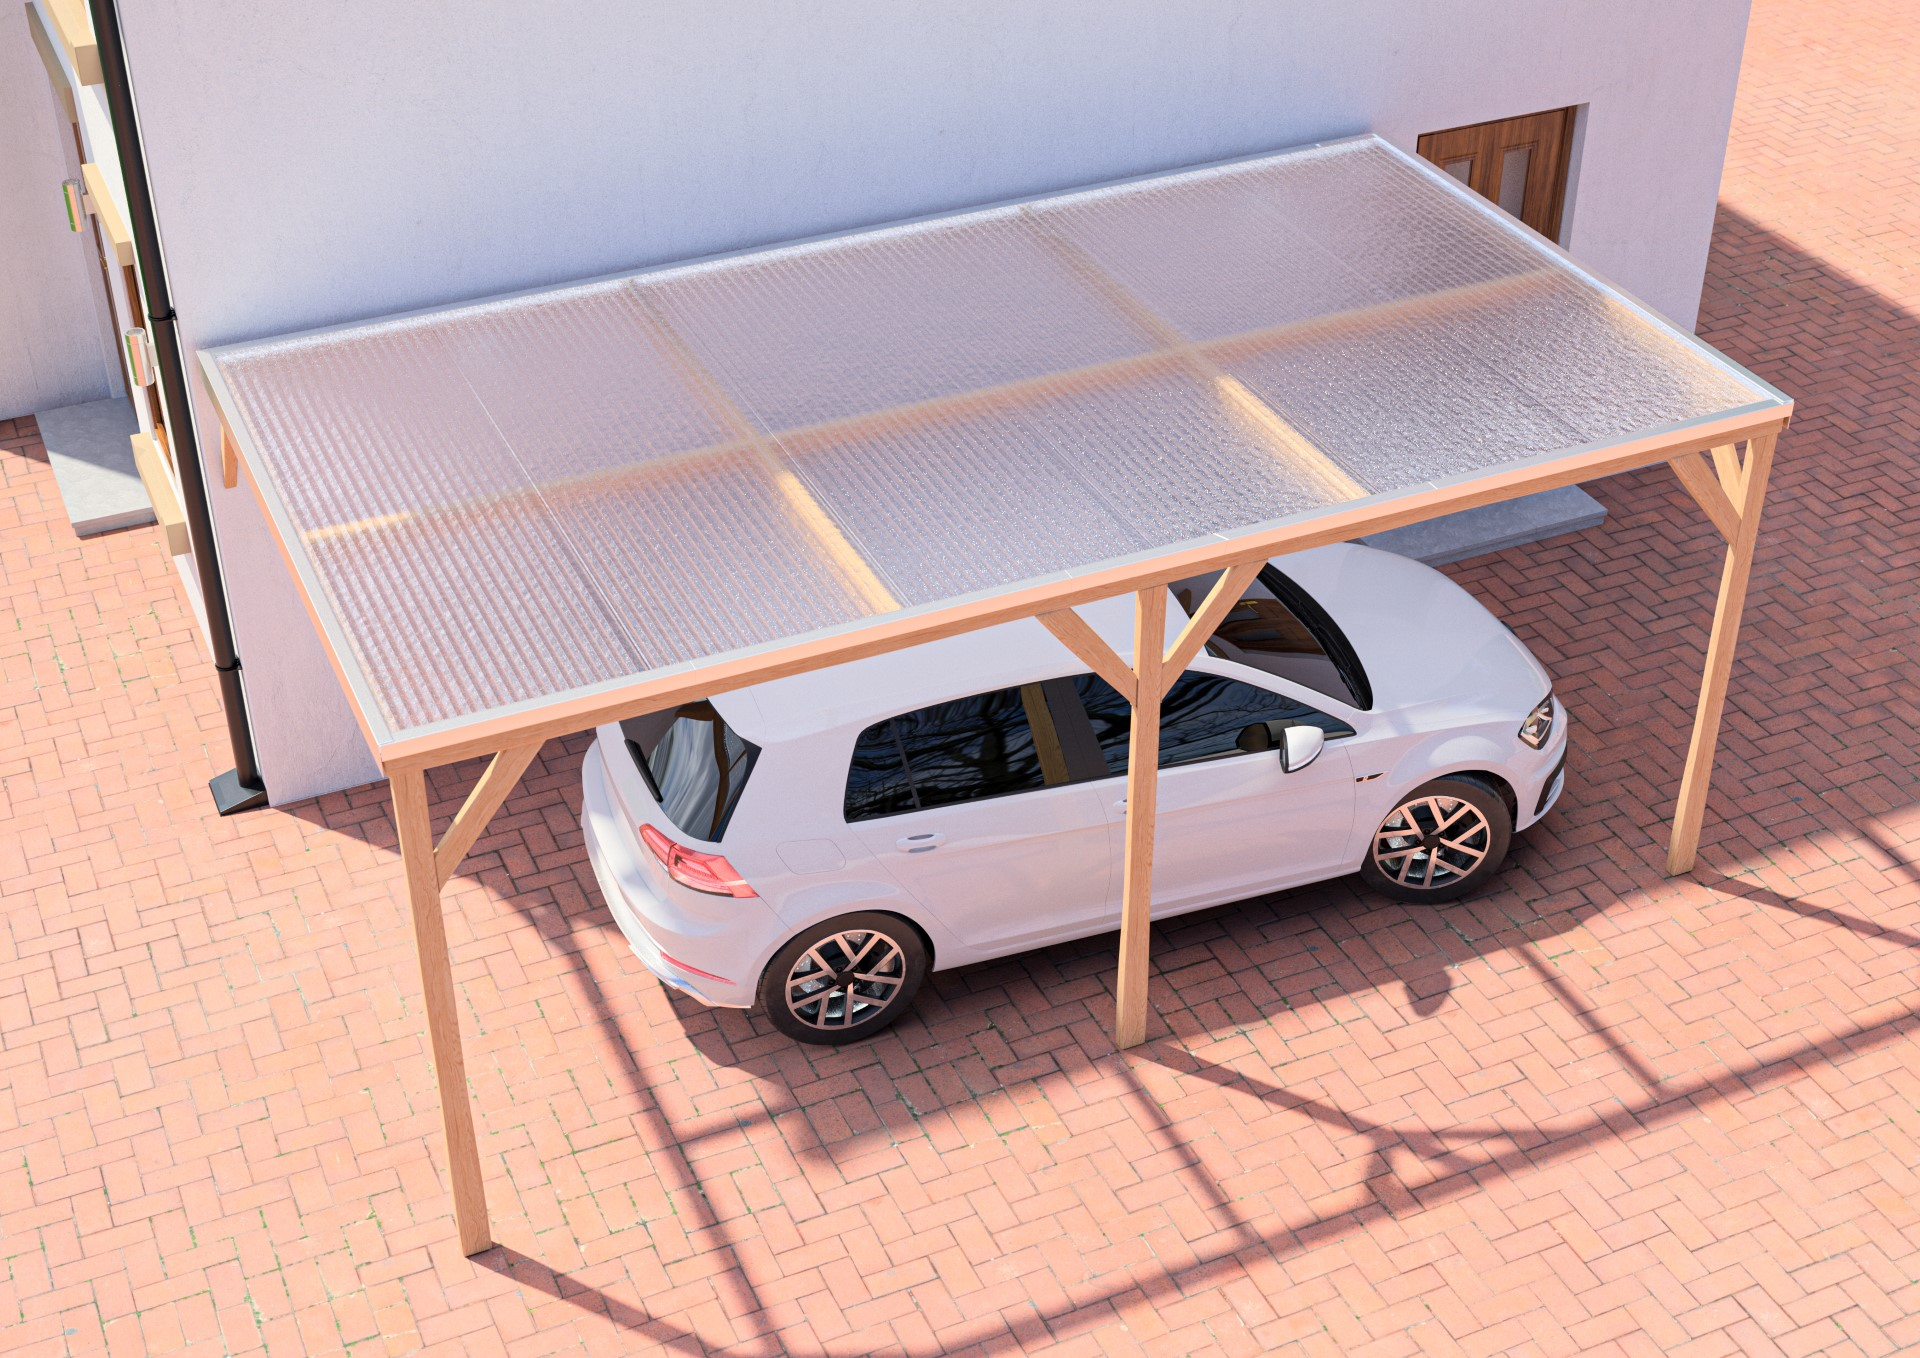 Clickfit Polycarbonate Roofing System